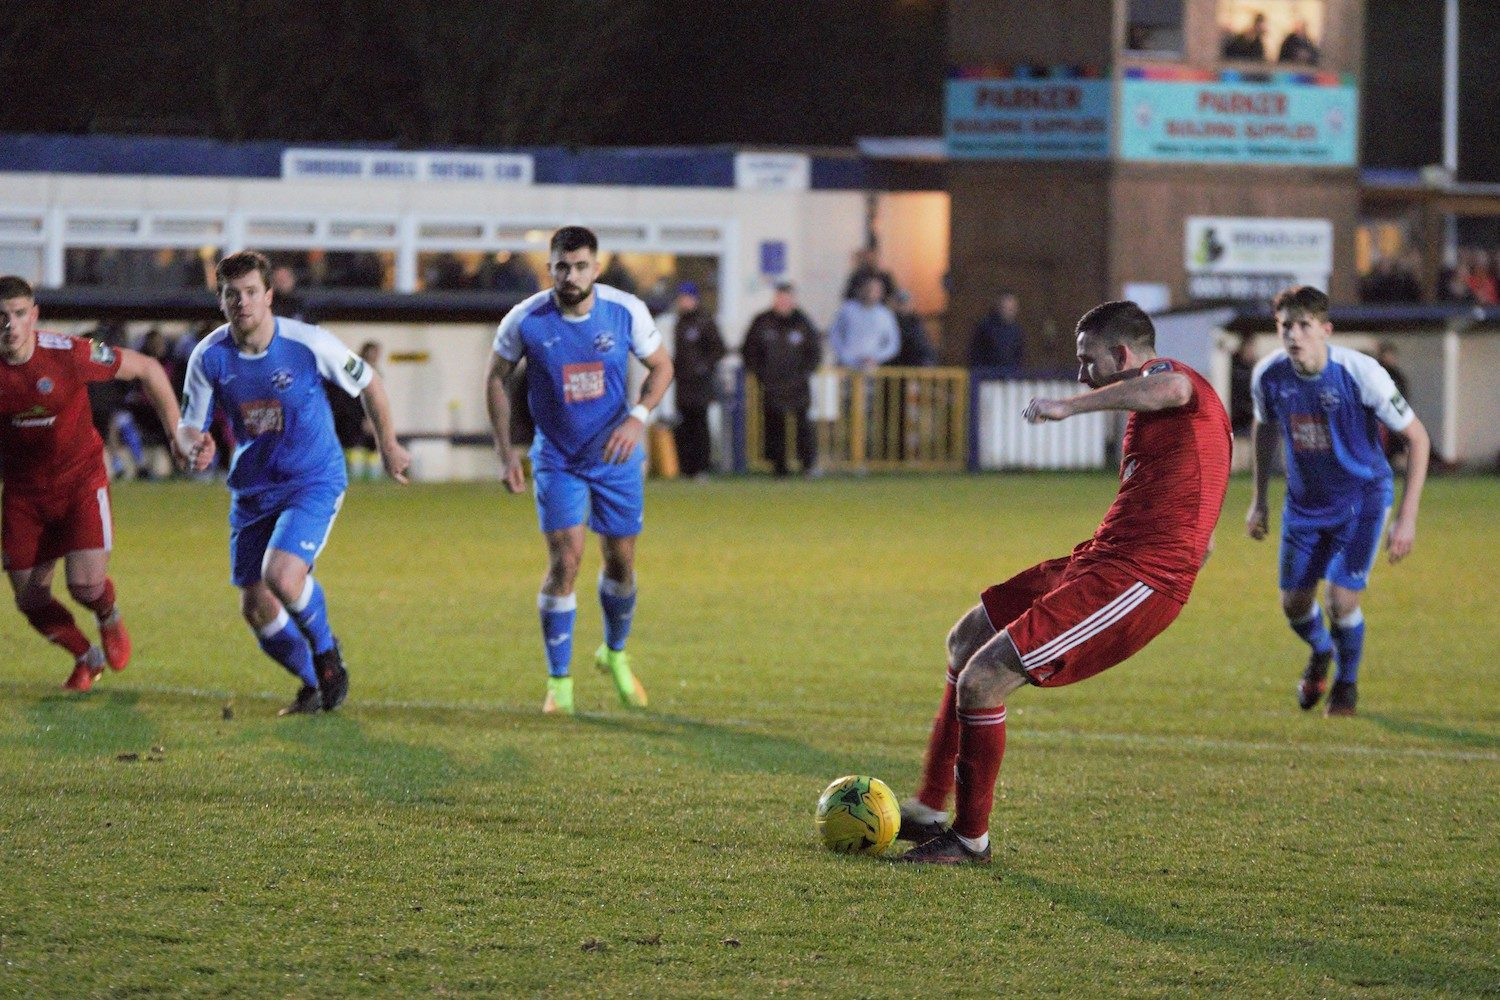 HIGHLIGHTS: Tonbridge Angels 1-2 Worthing [A] – League